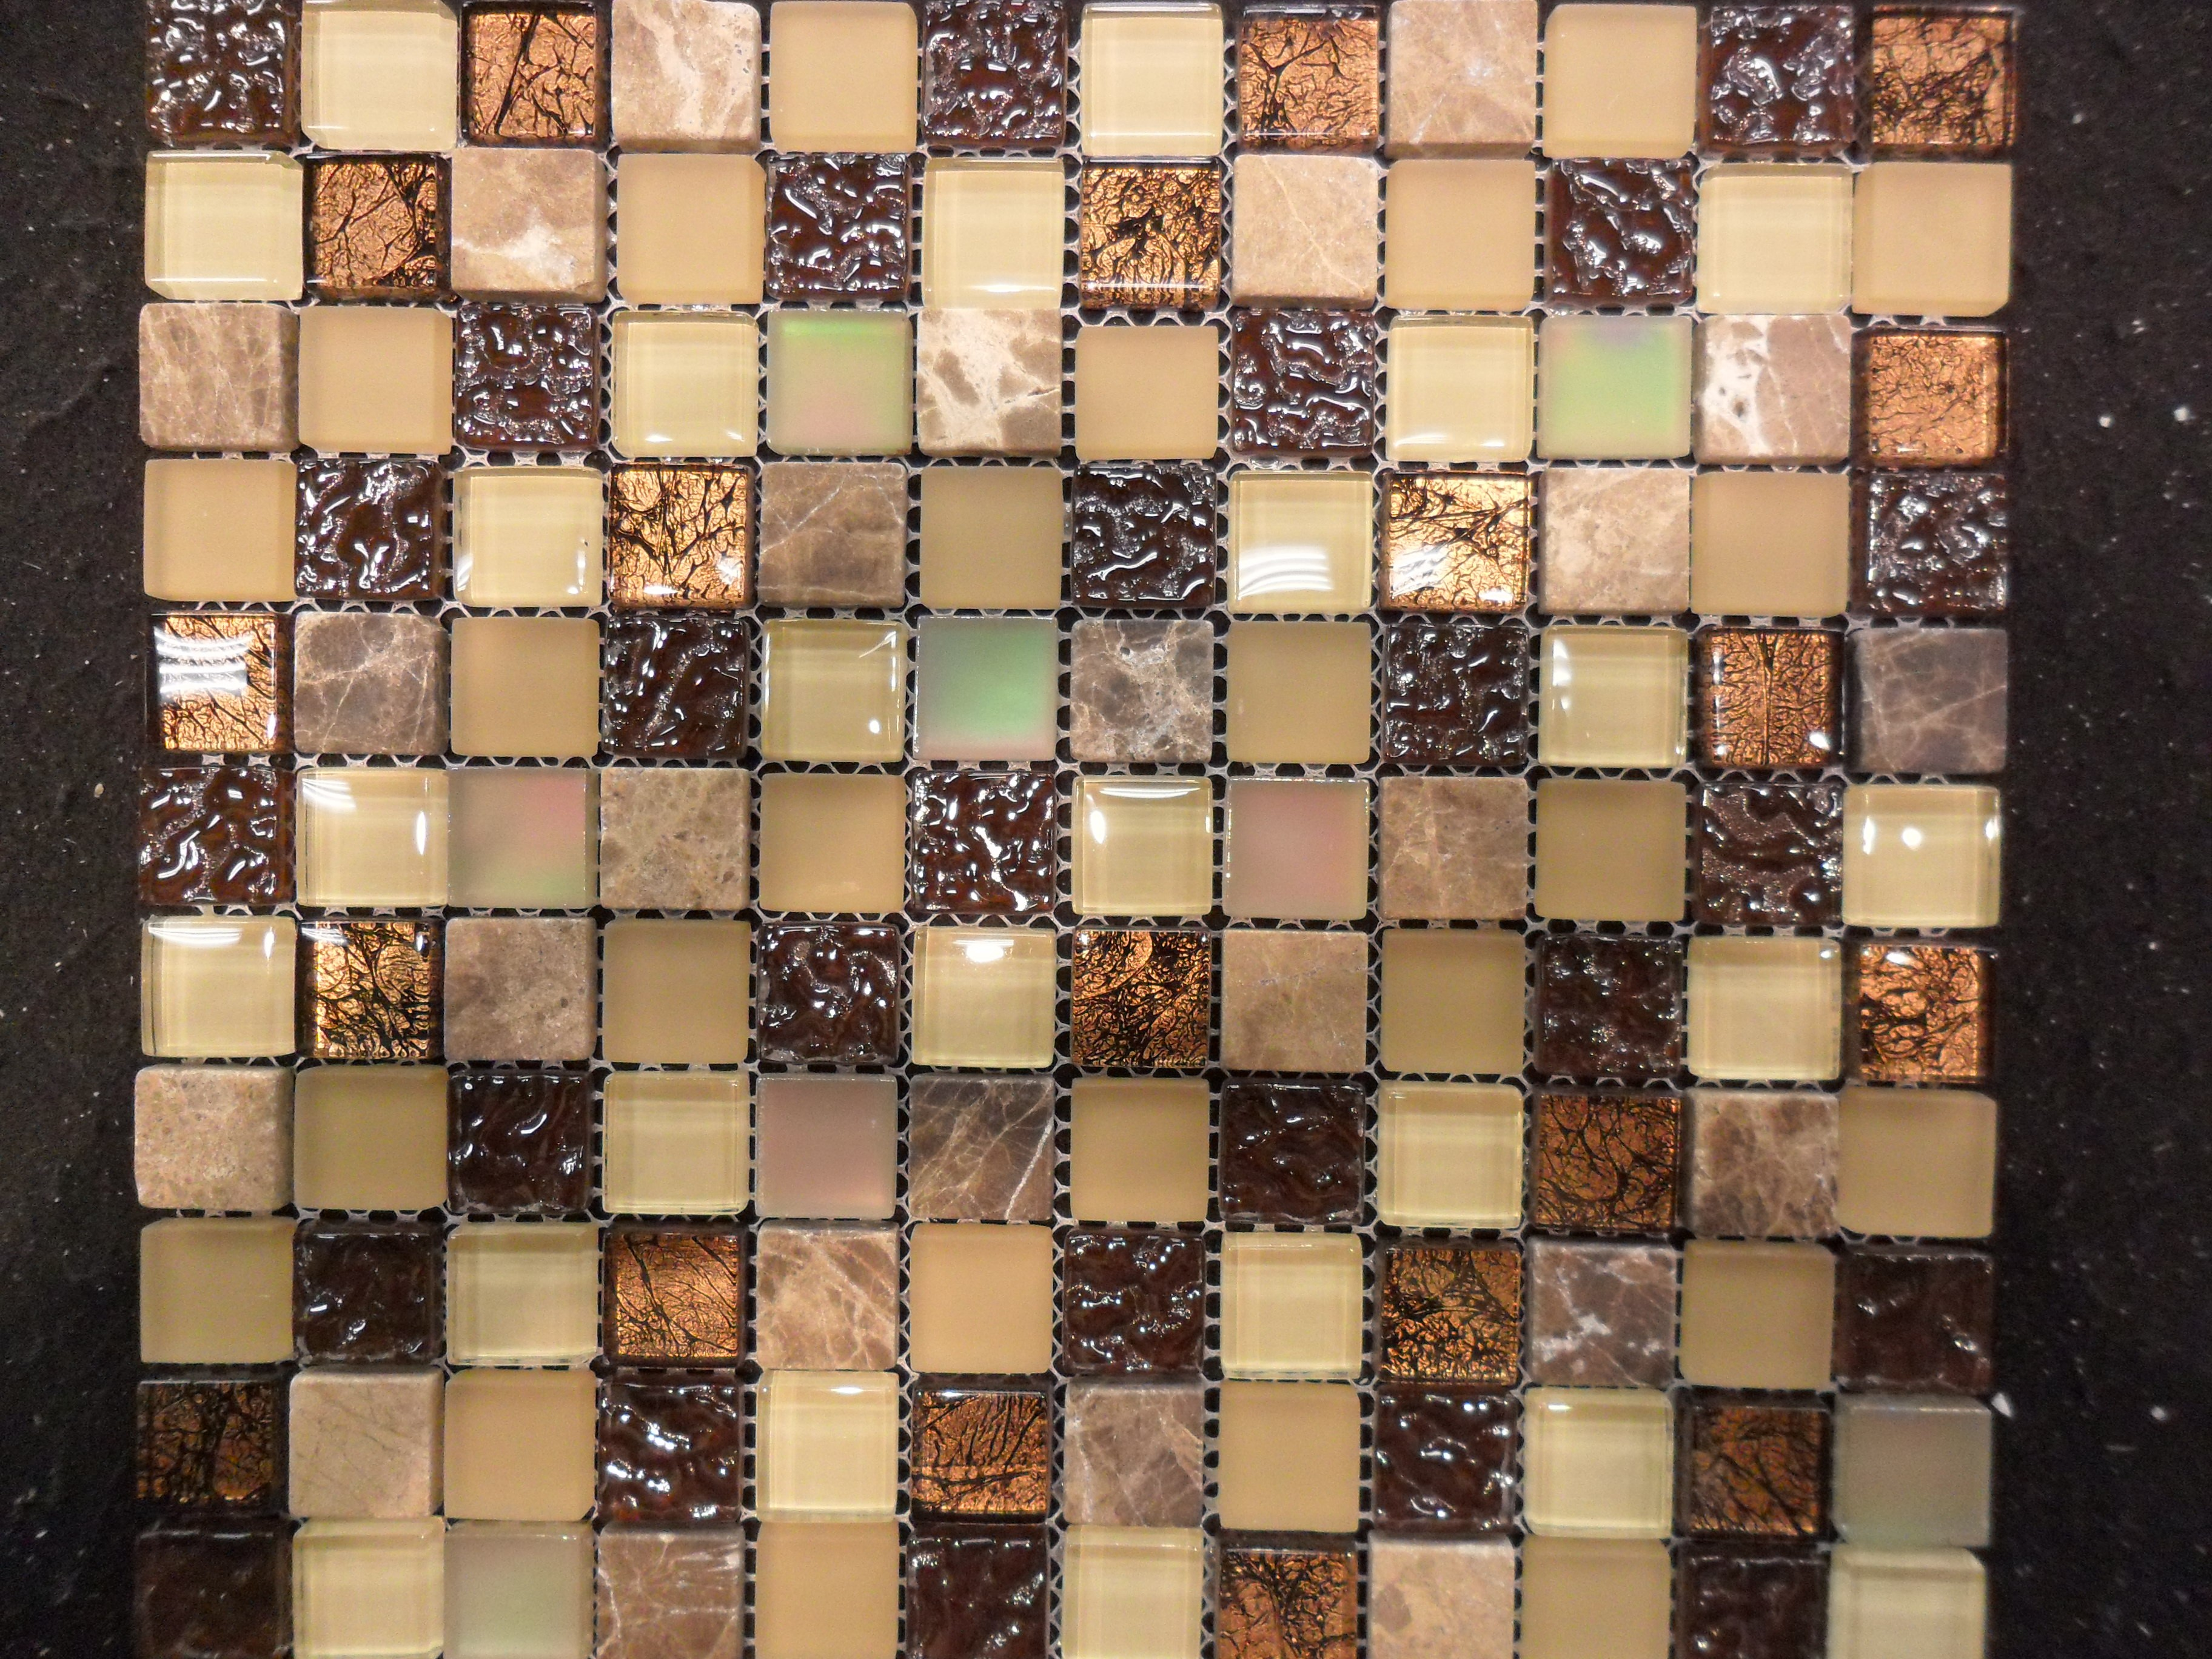 ... com/glass-tile-stone-mix-copper-look-mosaic-tile-backsplash-1-x1.html